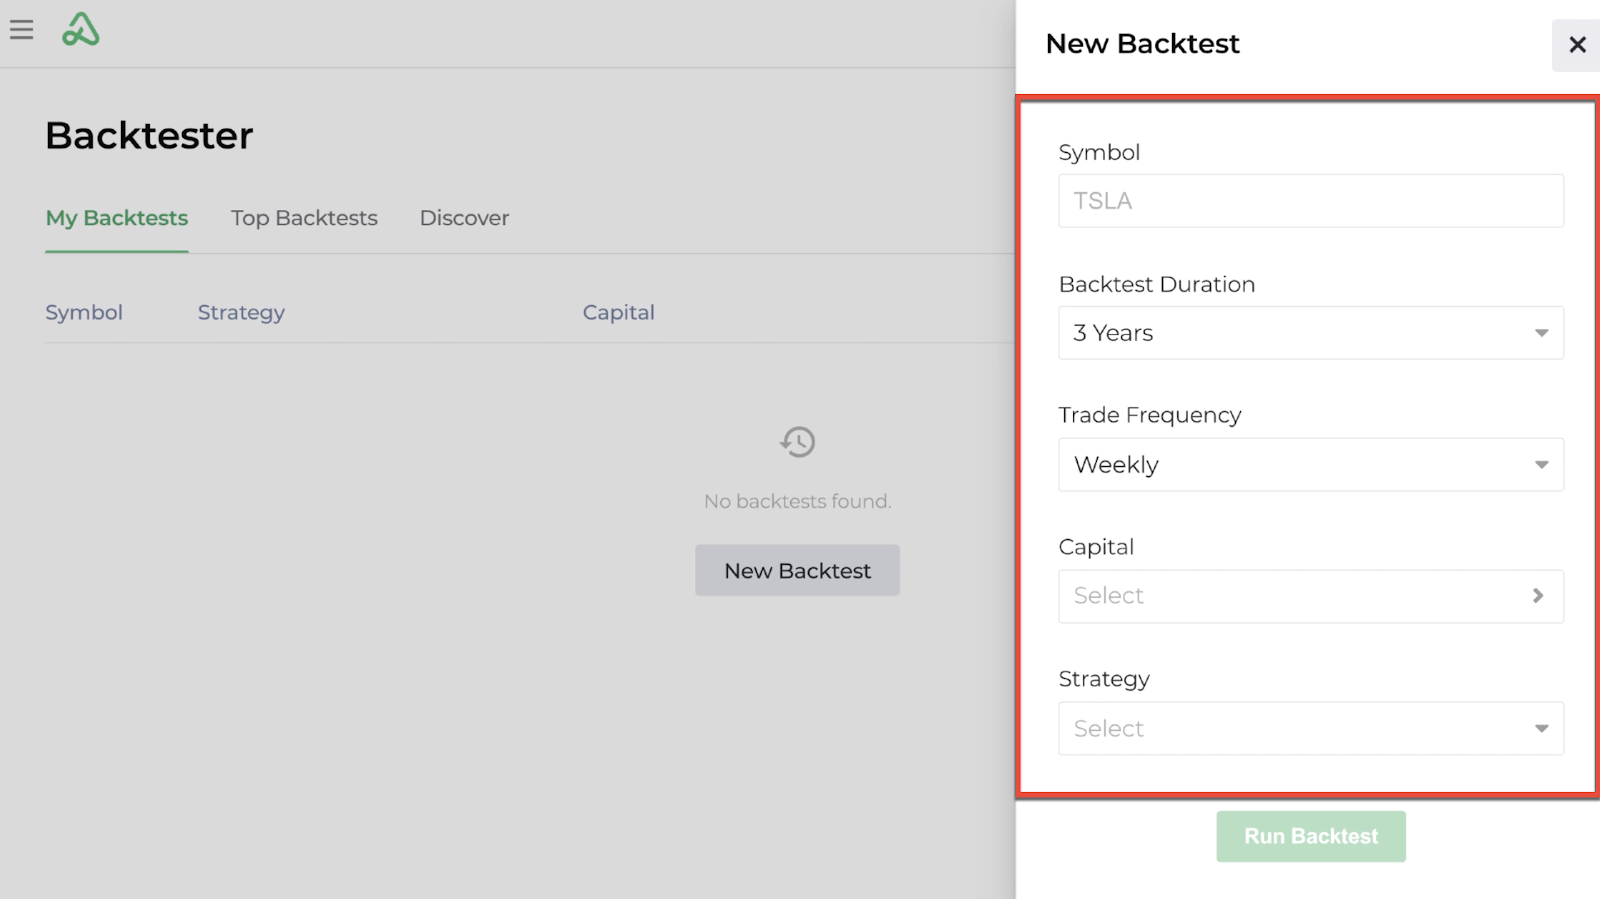 Screenshot of the new backtest criteria display